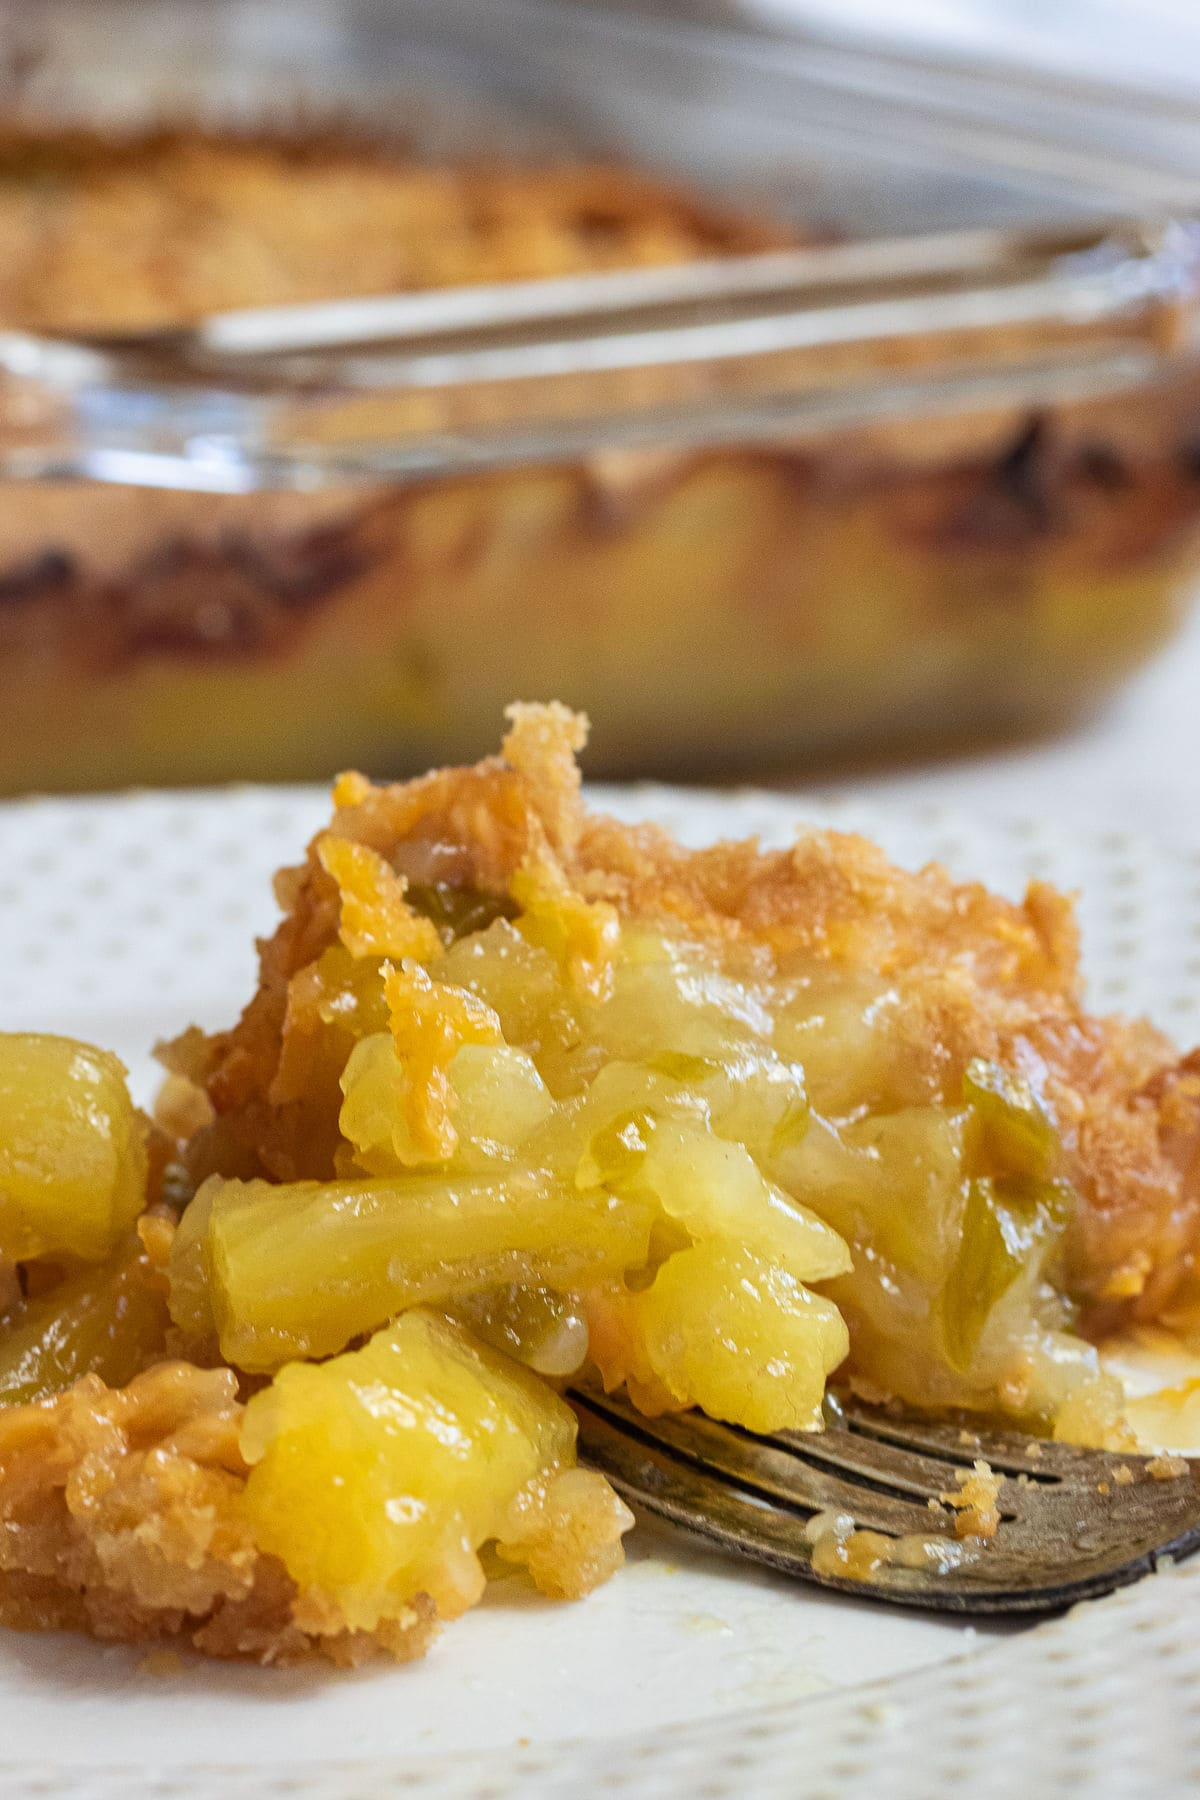 Close up of a serving of pineapple and cheese casserole.